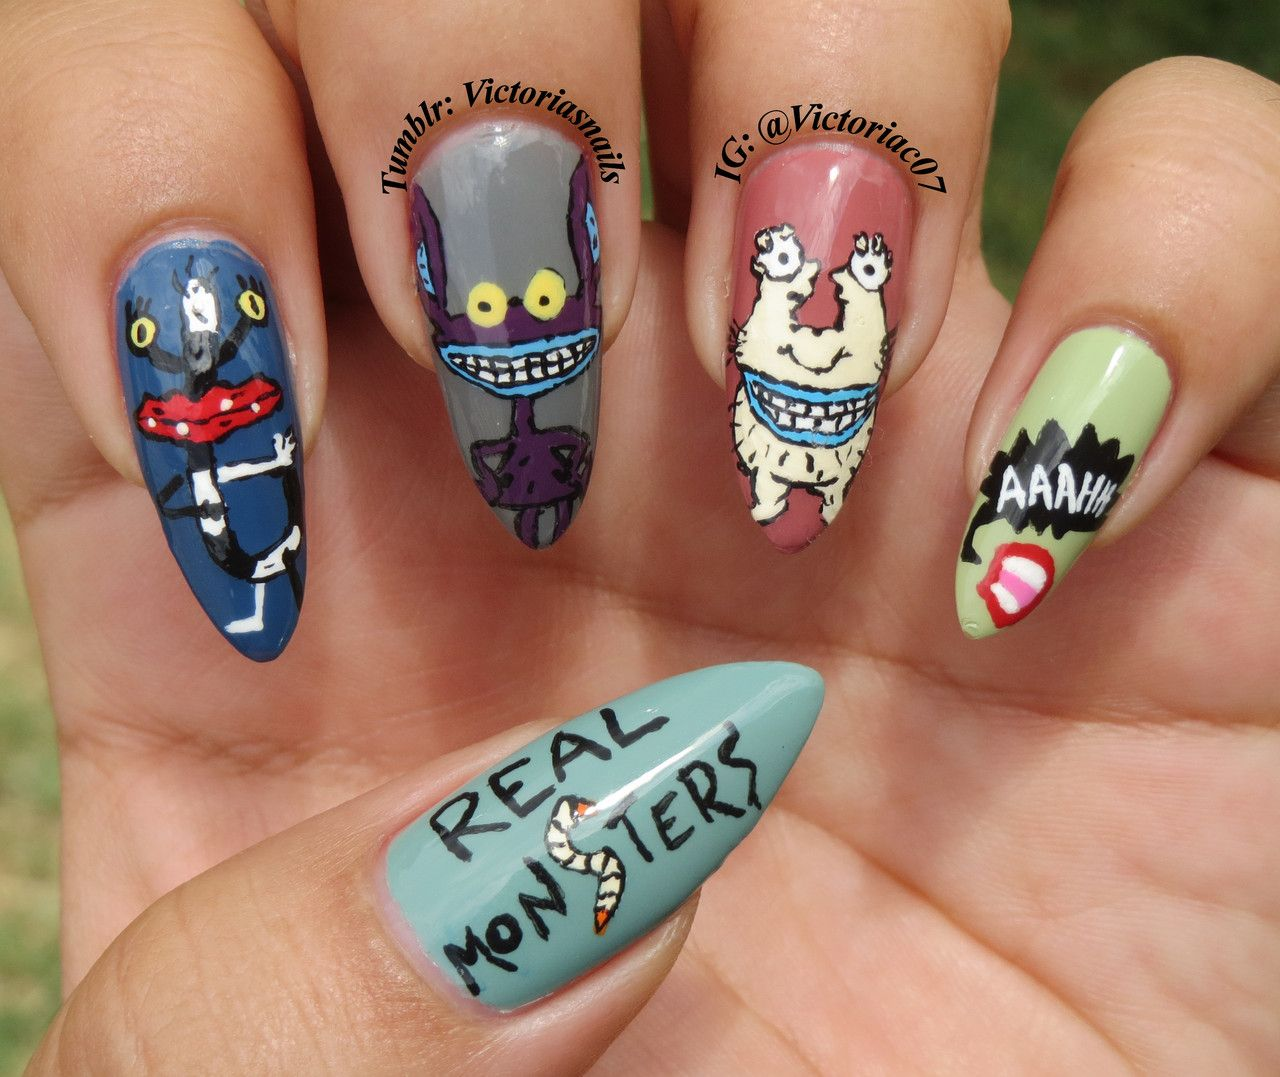 Aaahh real monsters who else loved this show as a kid makeup